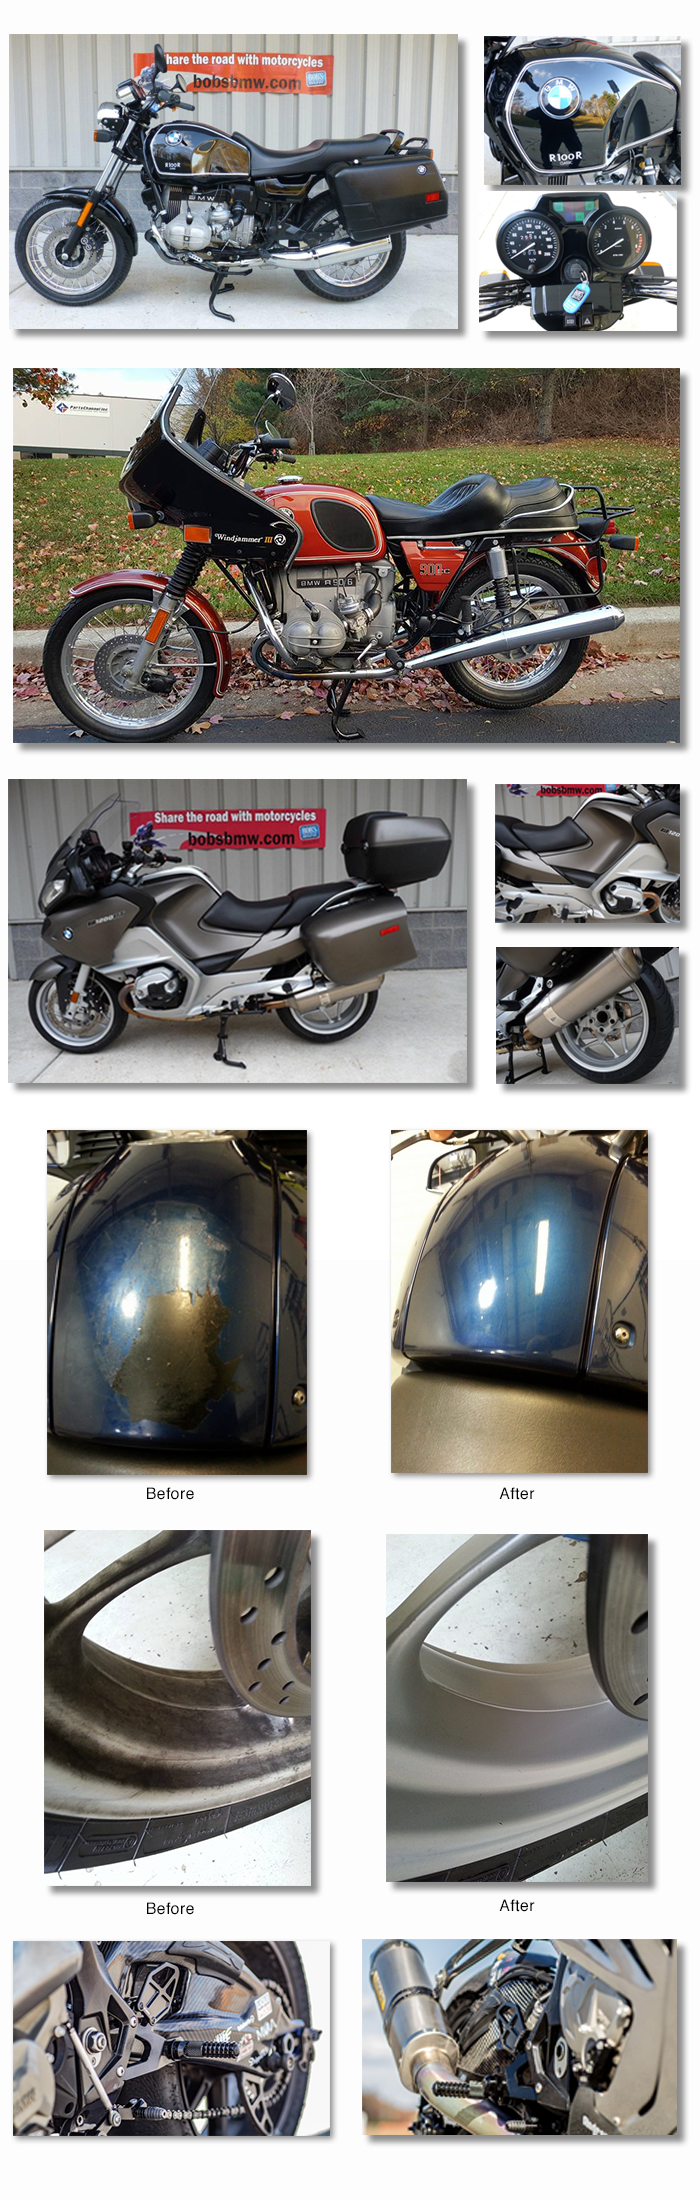 Motorcycle detailing at Bob's BMW Motorcycles